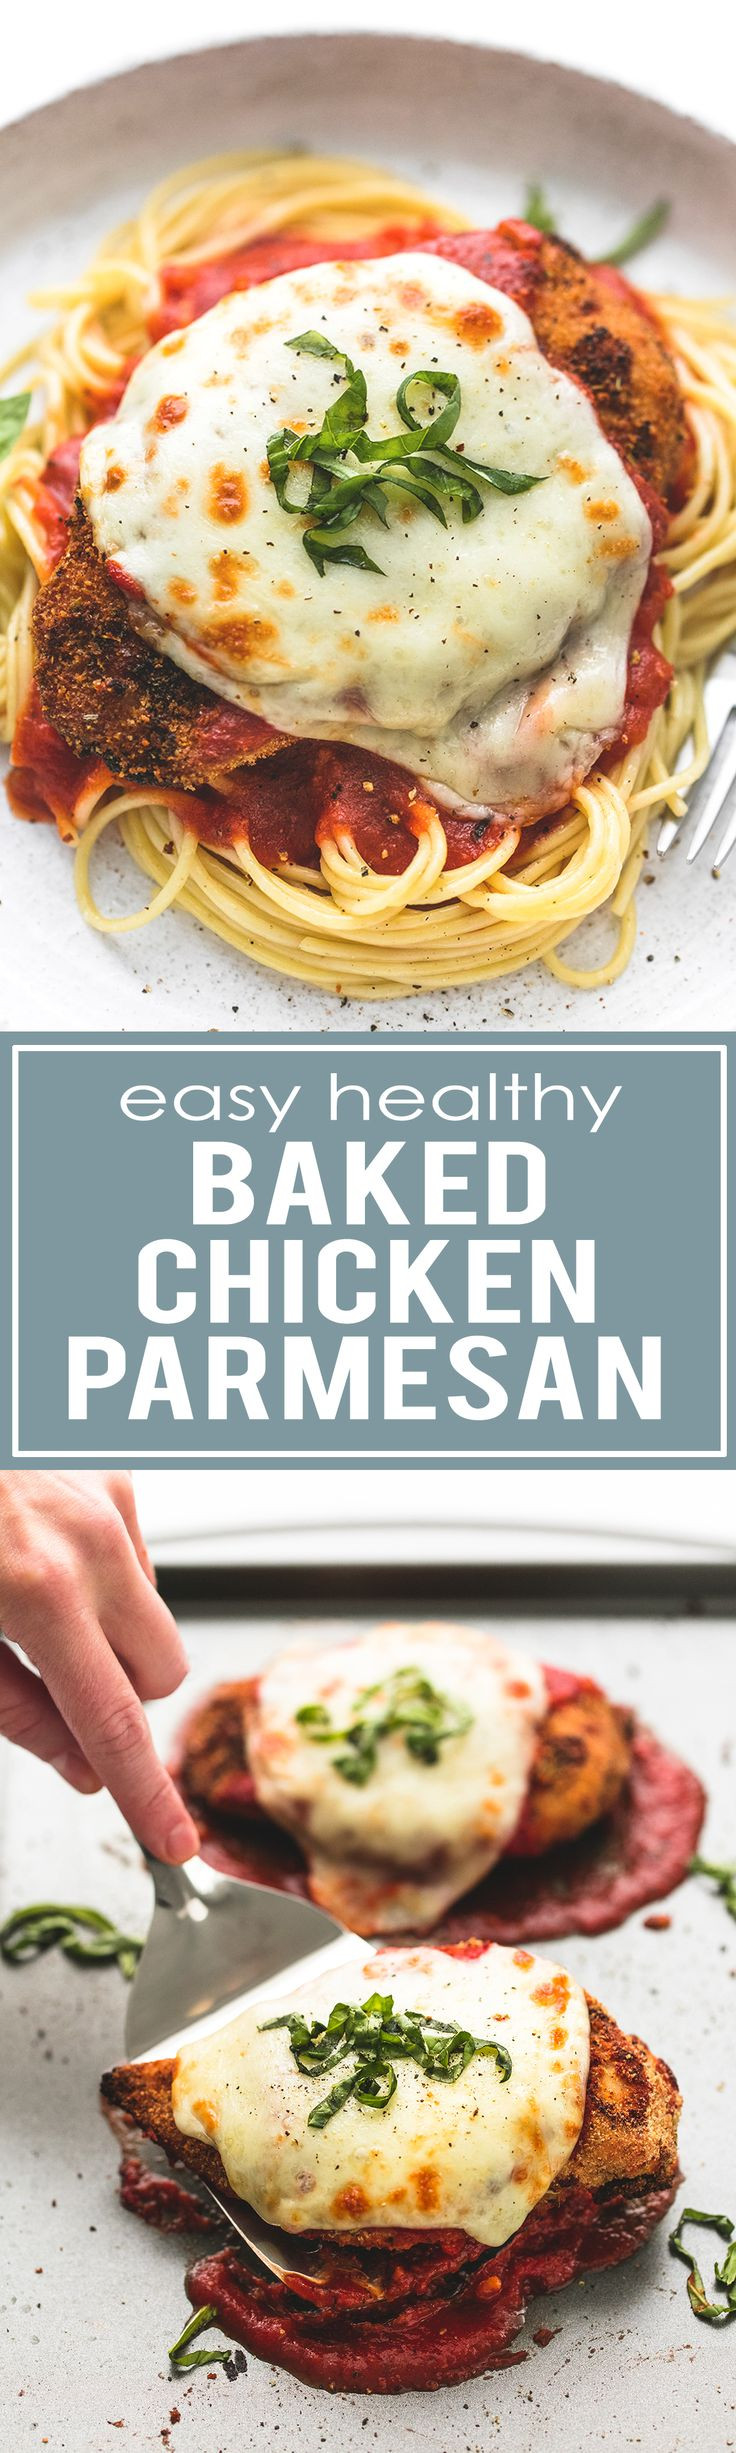 Healthy Baked Chicken Recipes Easy  Easy Healthy Baked Chicken Parmesan